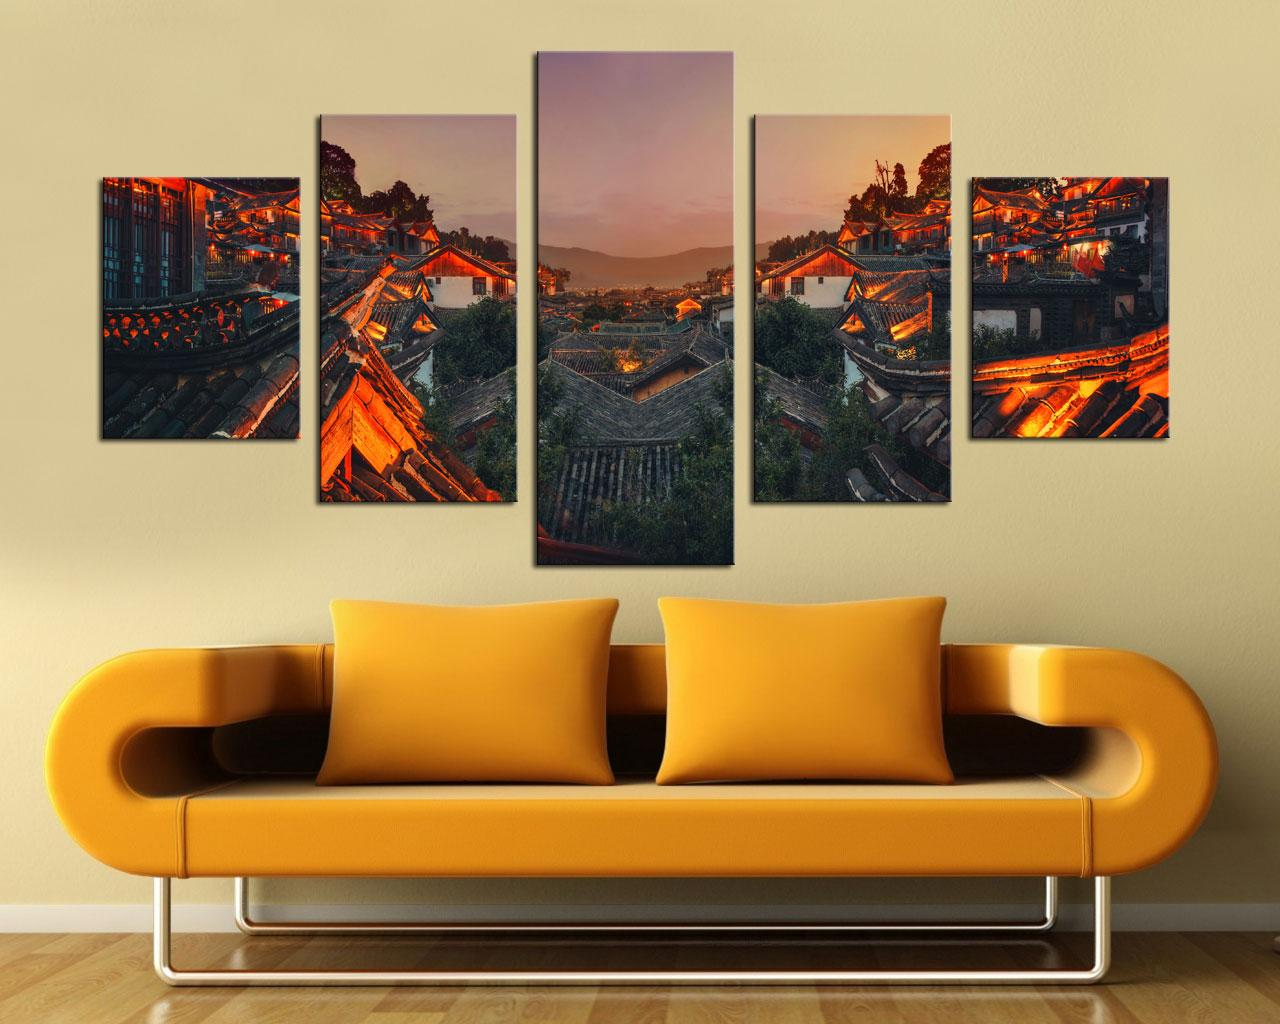 2018 Original New Home Decor Art Hd Print Landscape Oil Painting ...